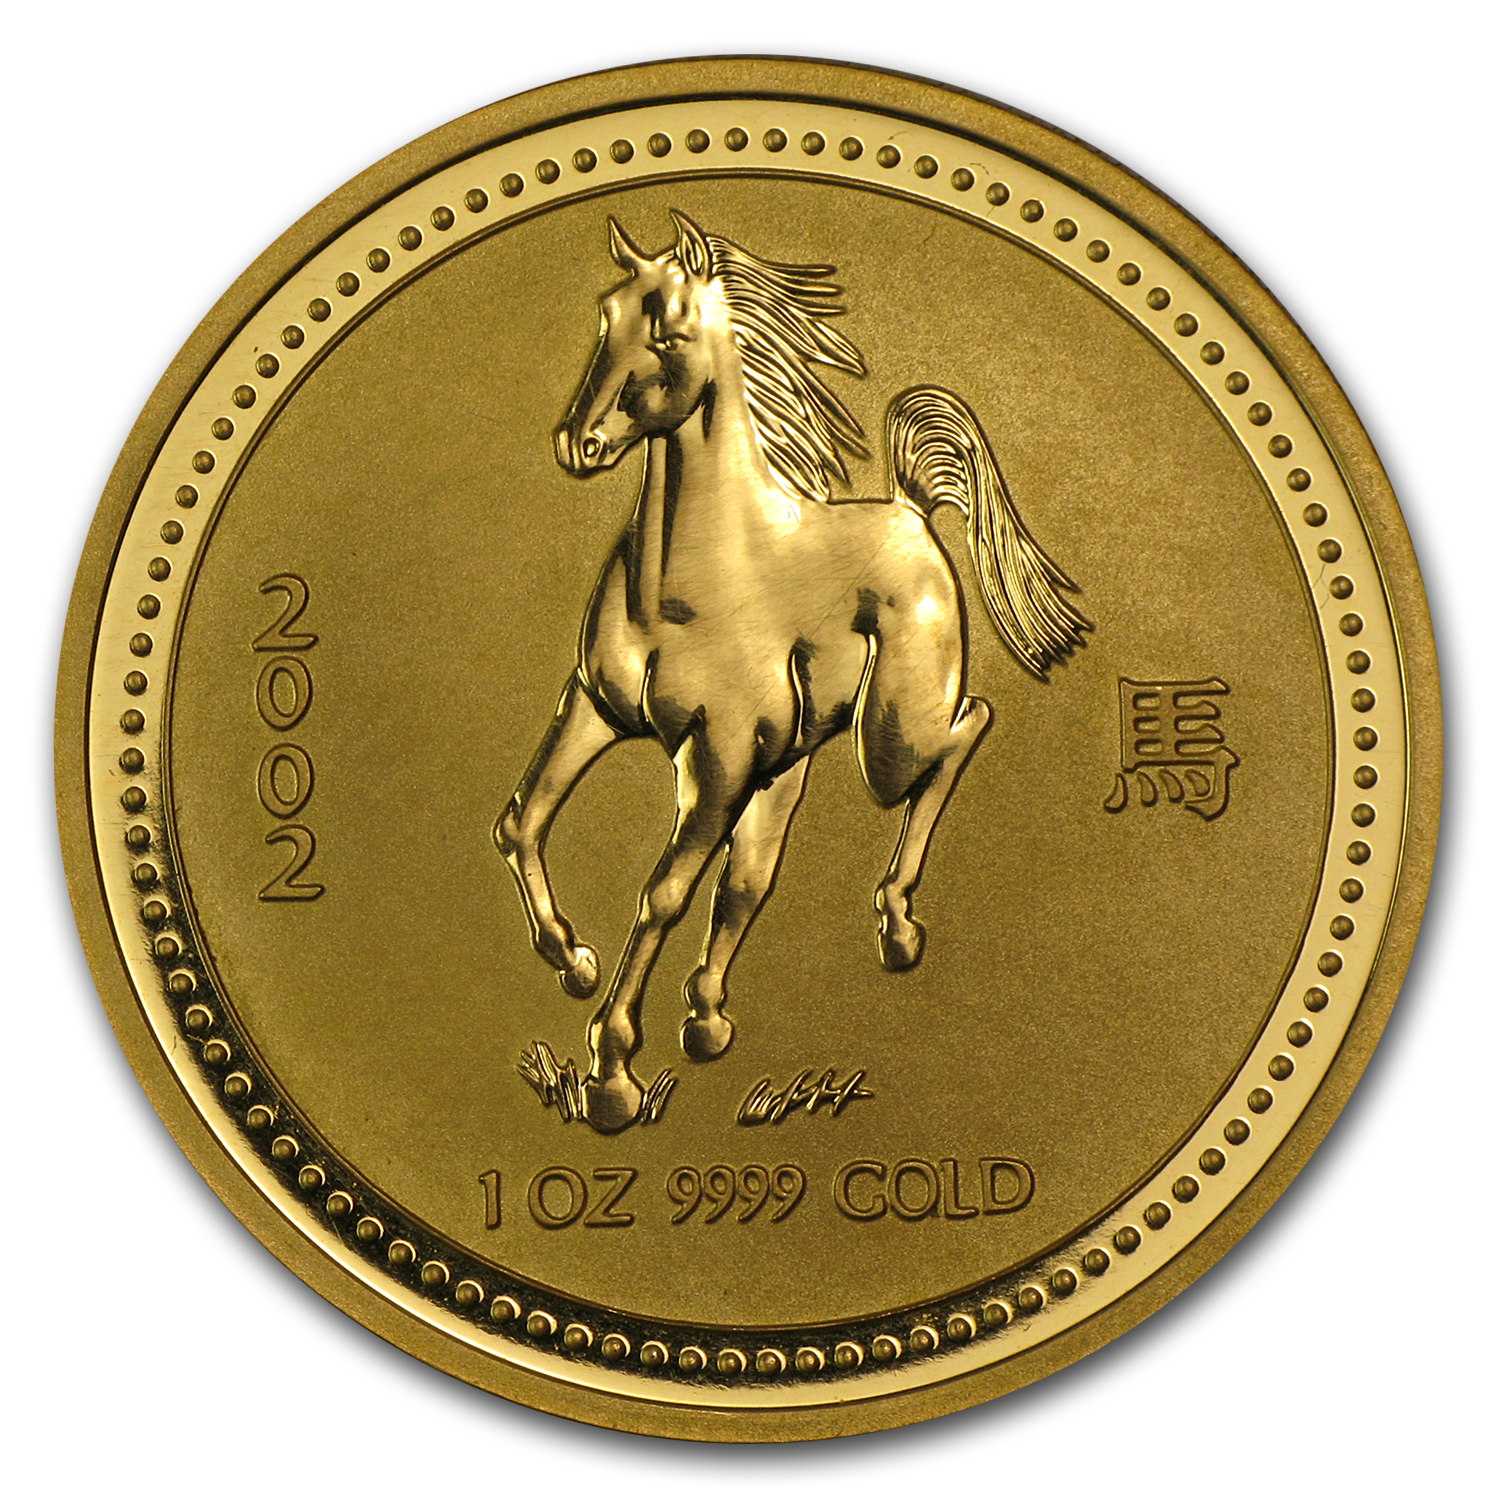 2002 1 oz Gold Year of the Horse Lunar Coin (SI)(Light Abrasions)